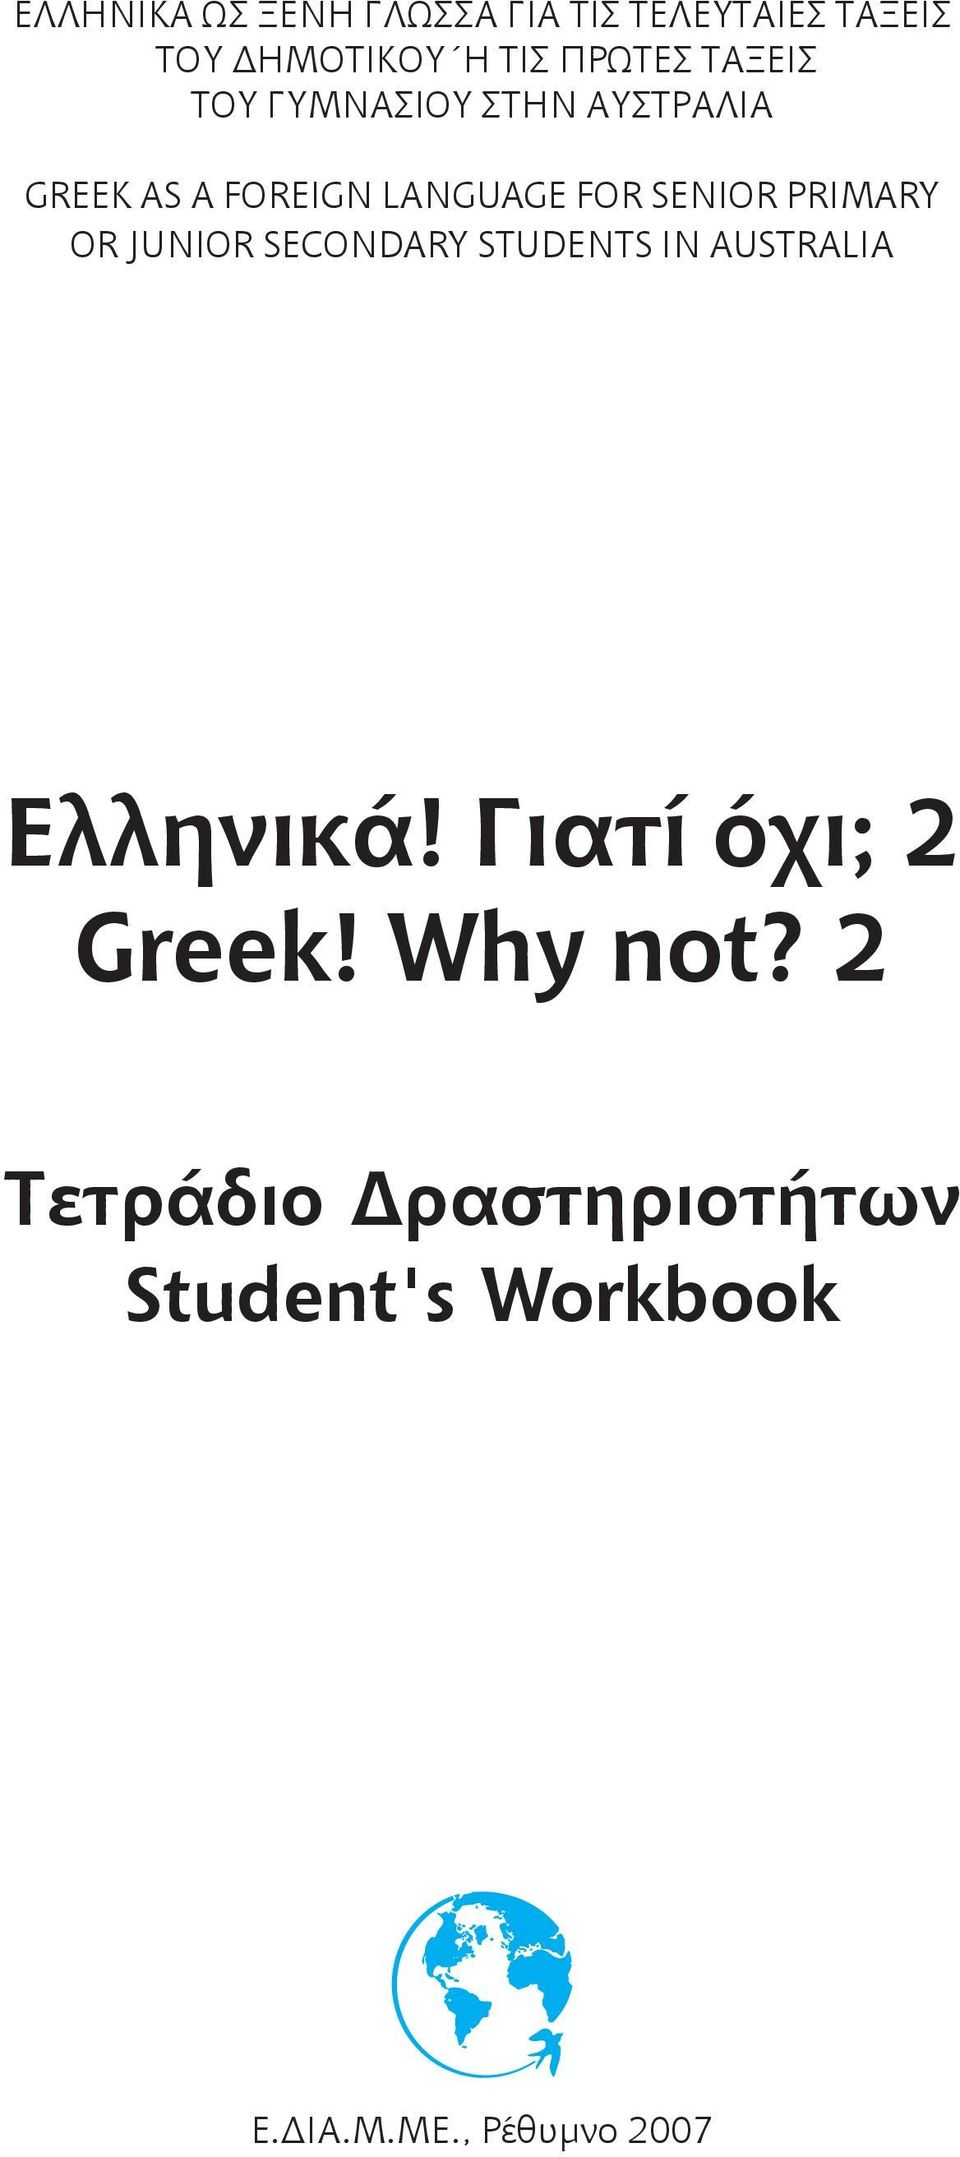 PRIMARY ΟR JUNIOR SECONDARY STUDENTS IN AUSTRALIA Eλληνικά!